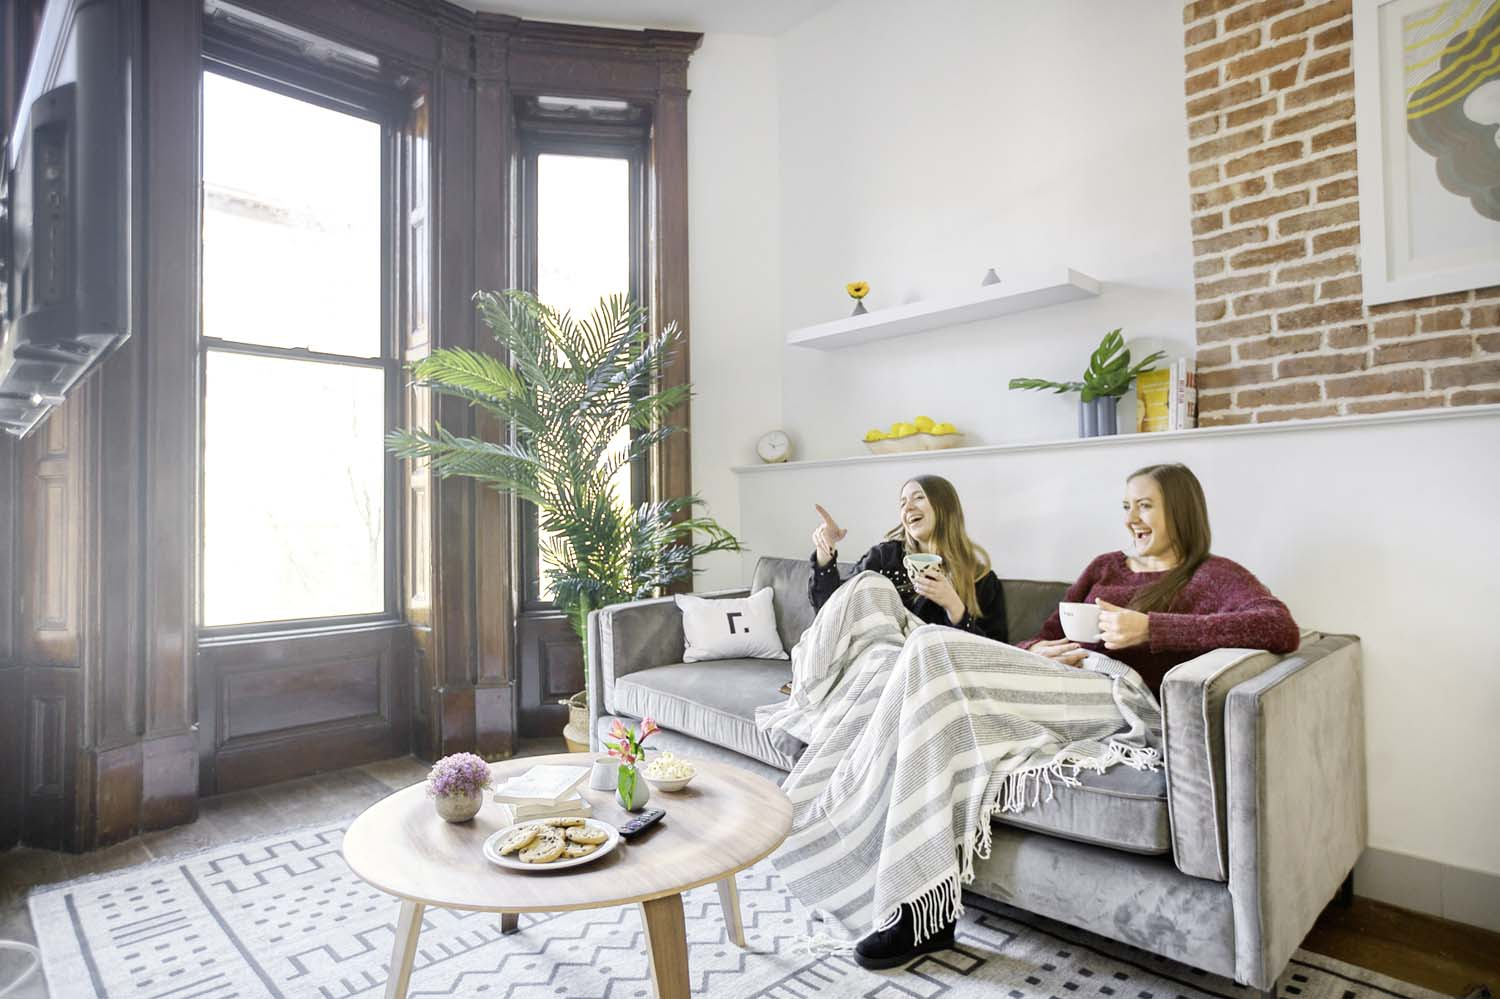 Coliving can help you find communities and networks much easily.